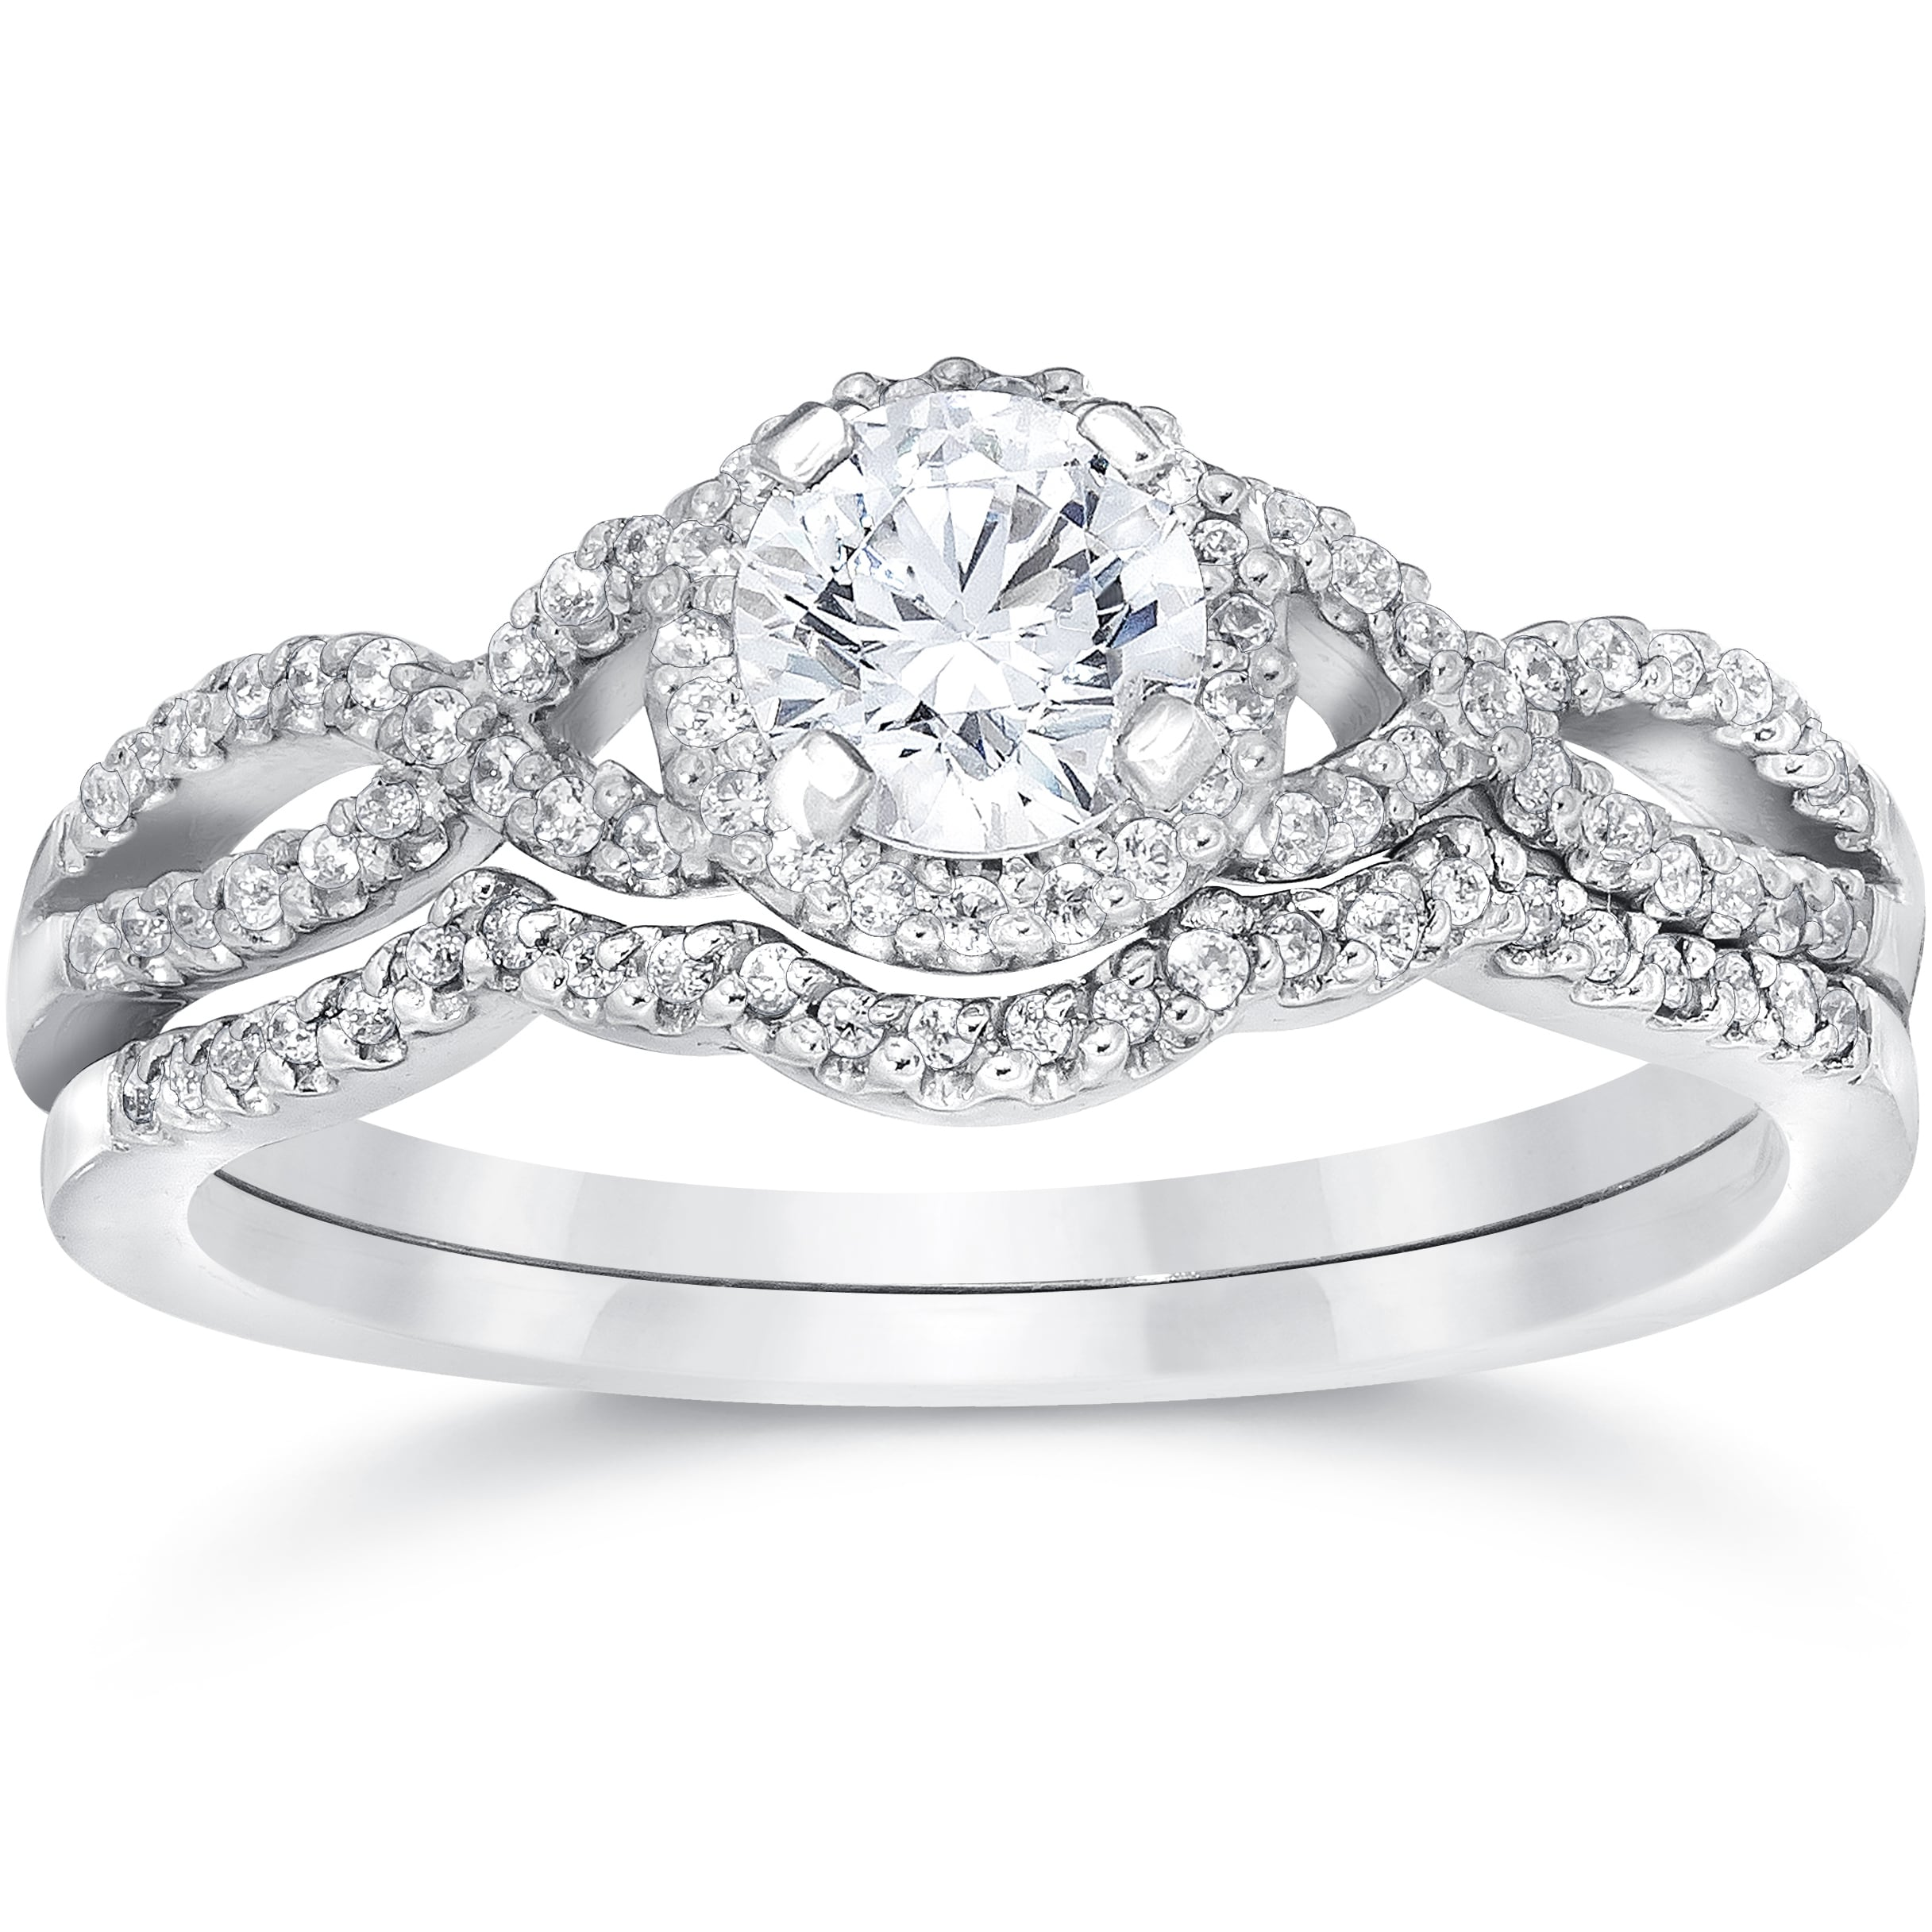 Shop 14k White Gold 3/4ct TDW Diamond Infinity Halo Engagement ...